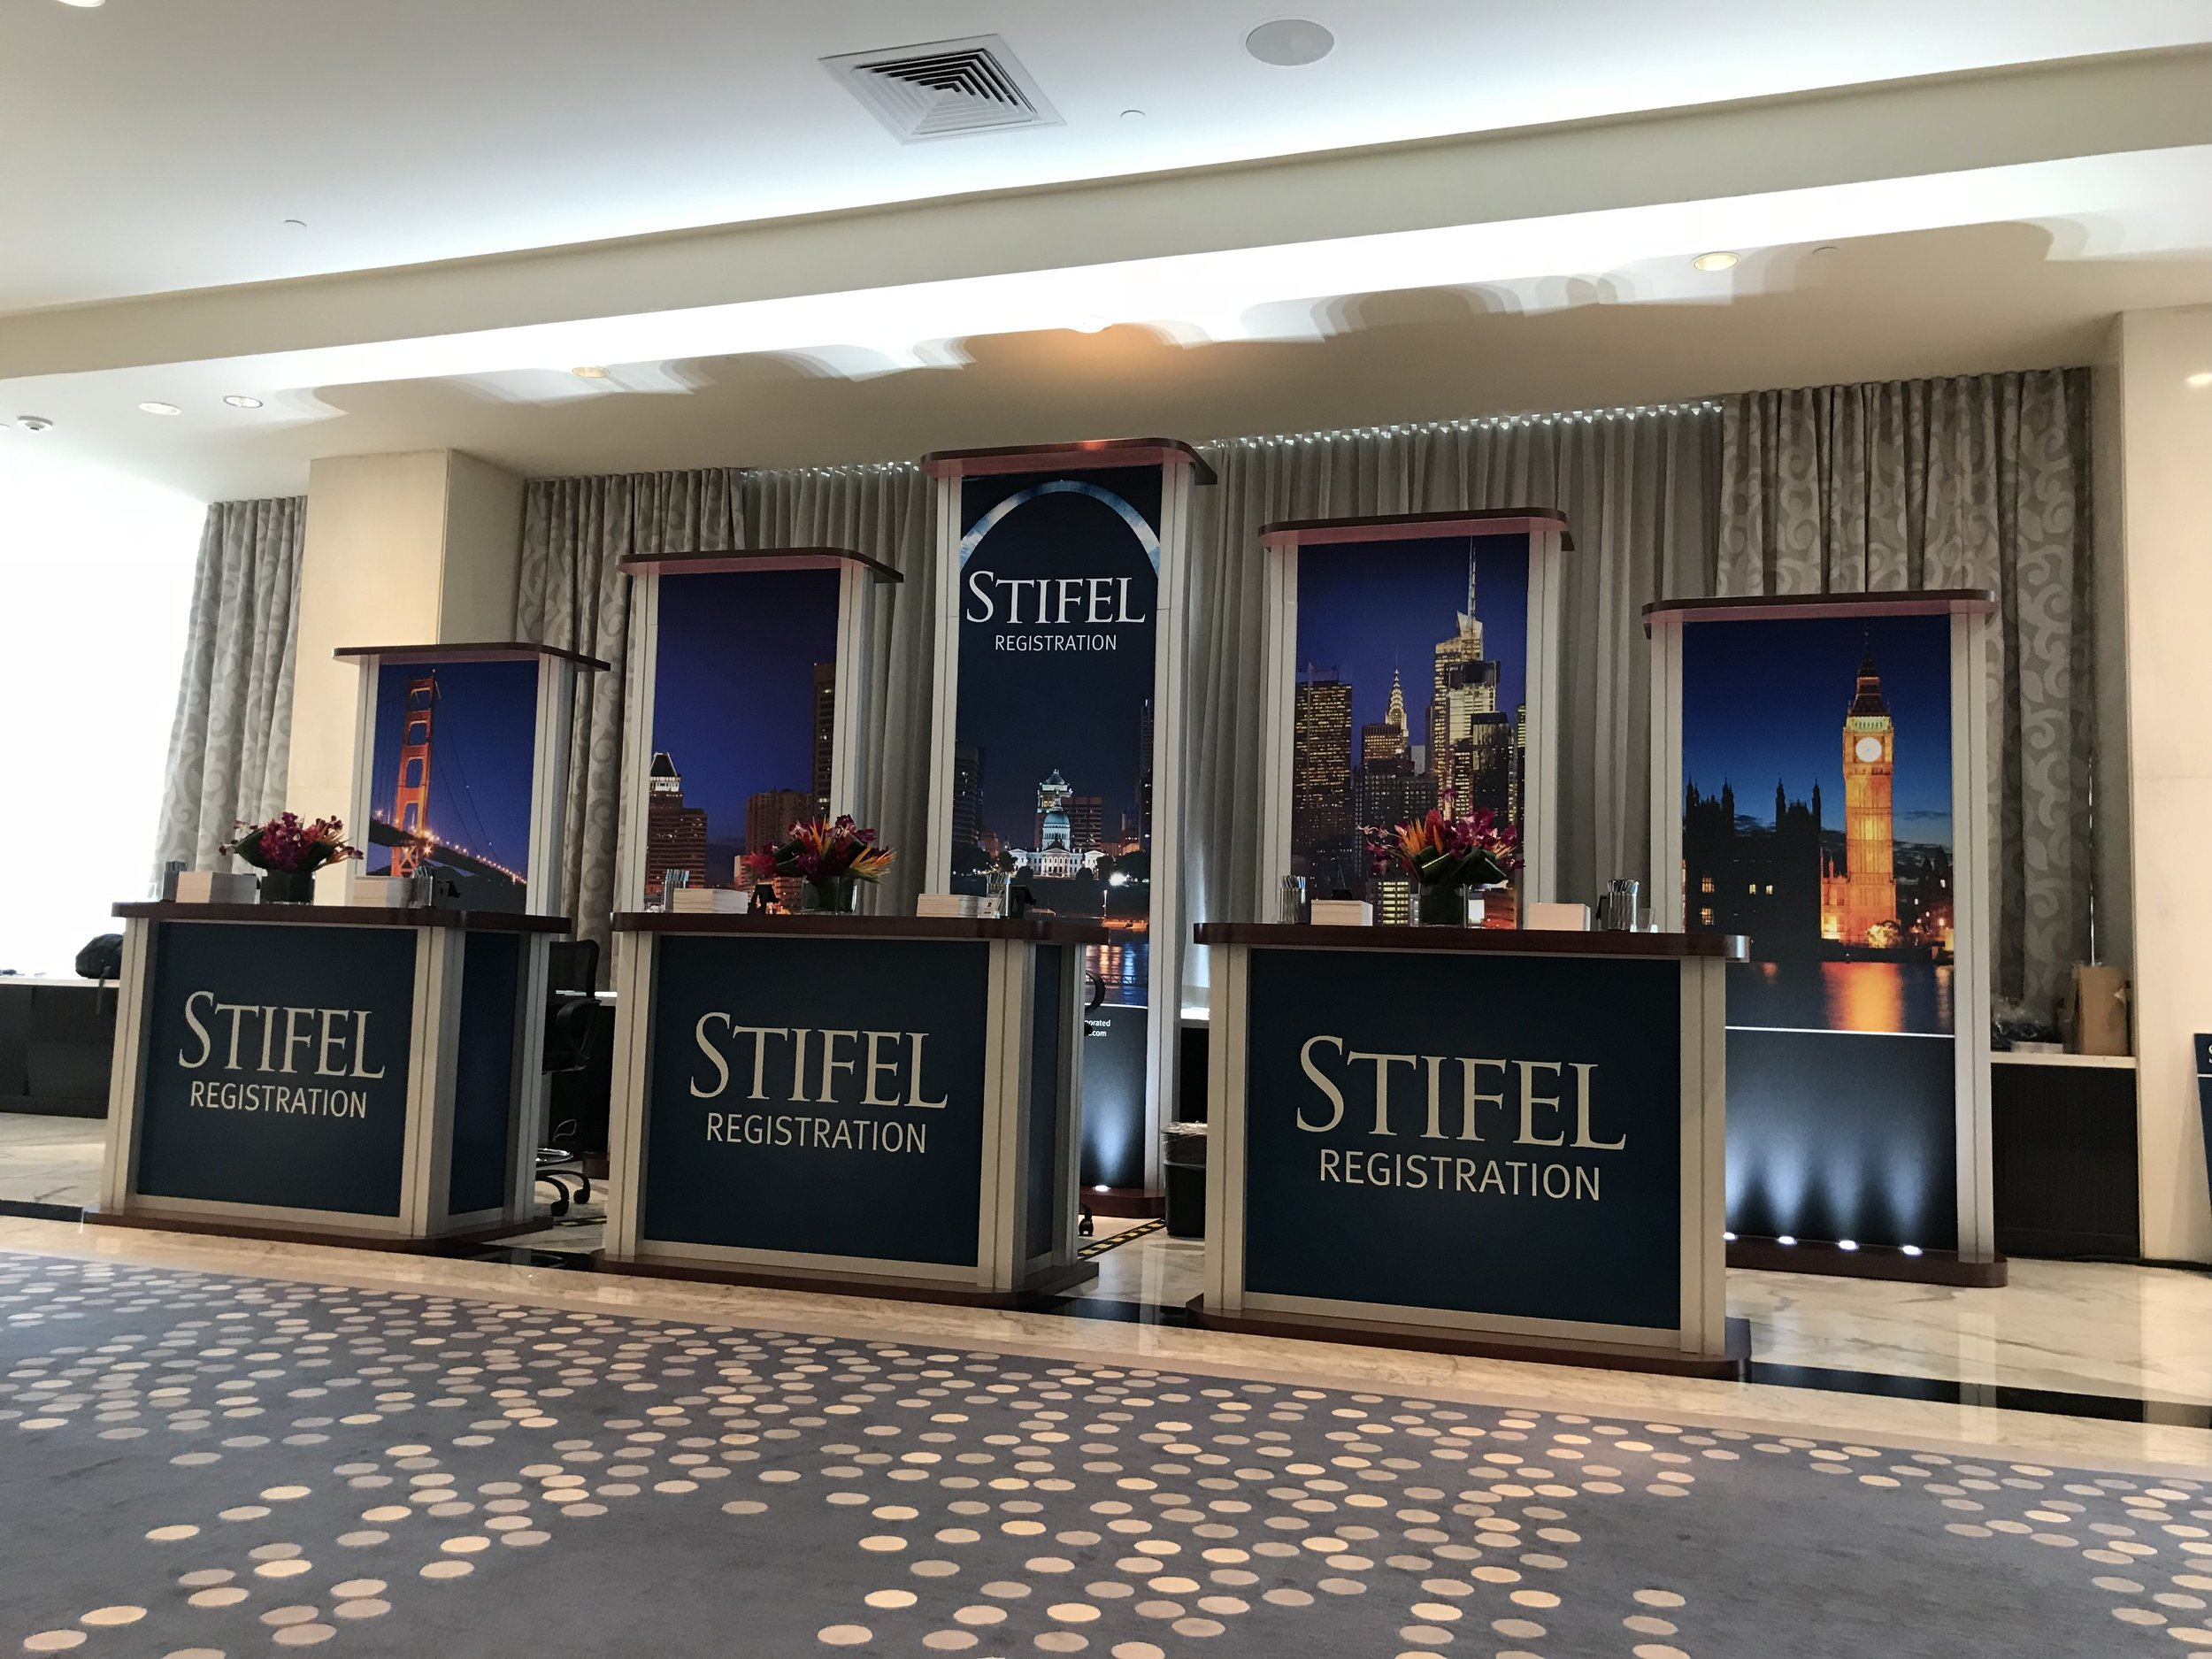 Stifel Transportation 2018 Site Photo (4).jpg